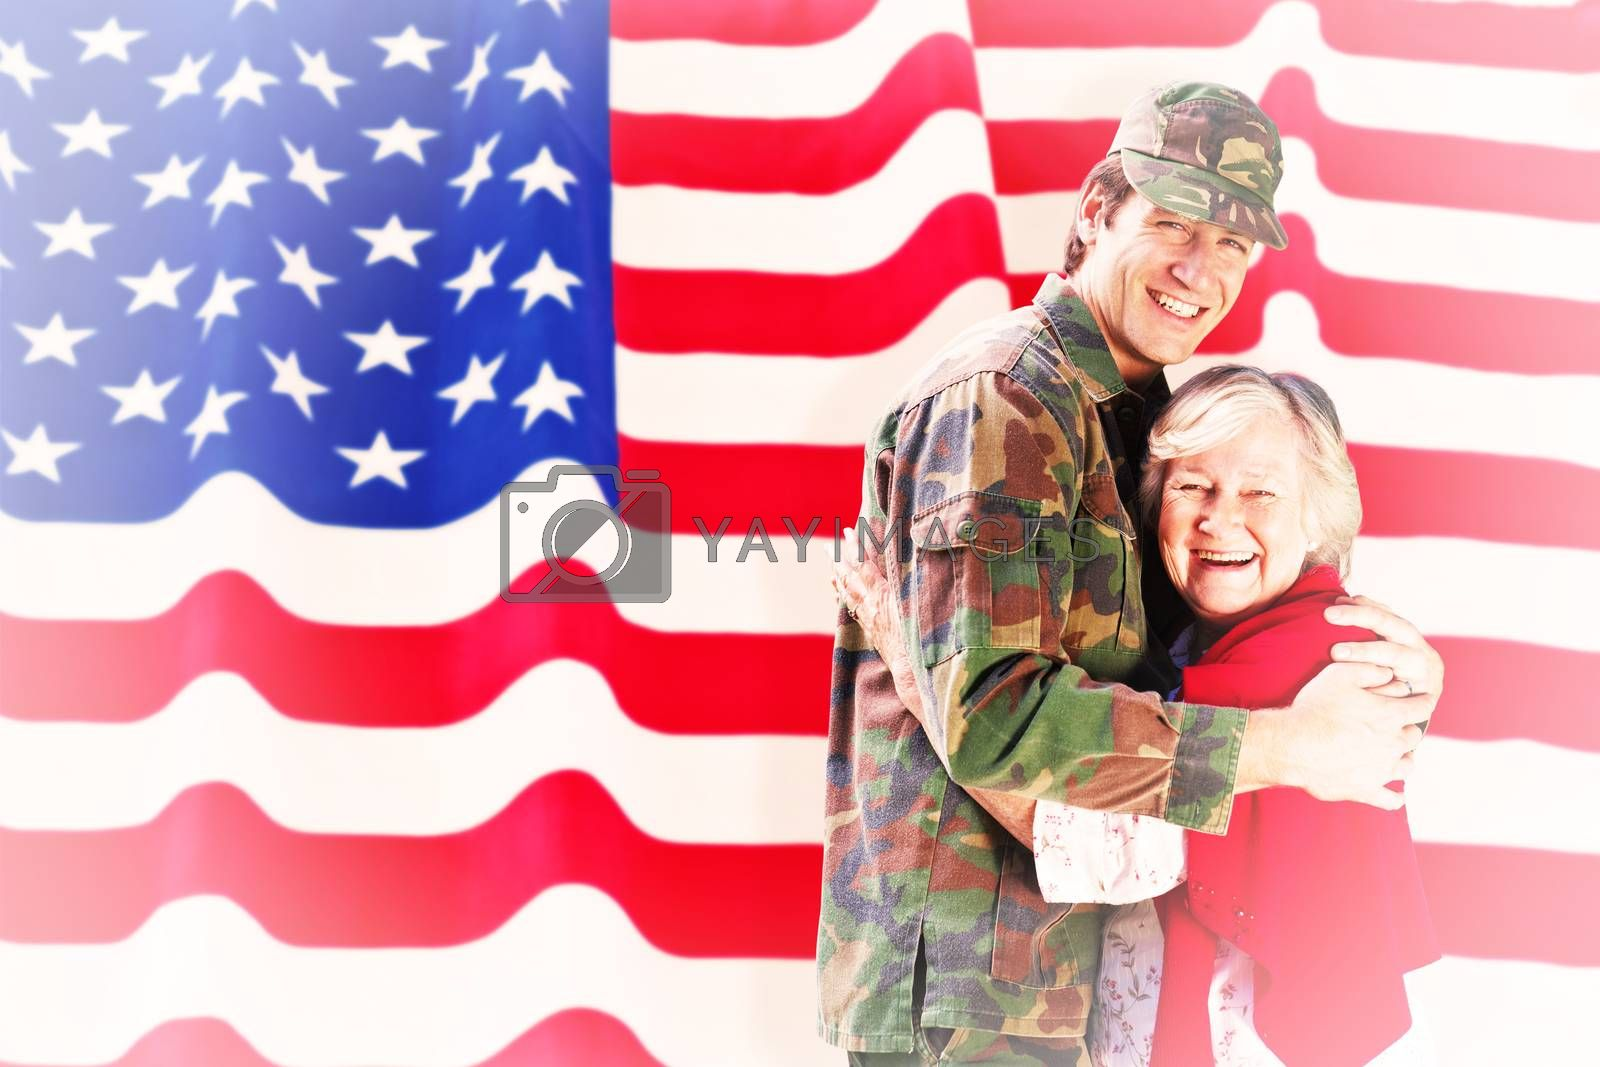 Composite image of solider reunited with mother by Wavebreakmedia